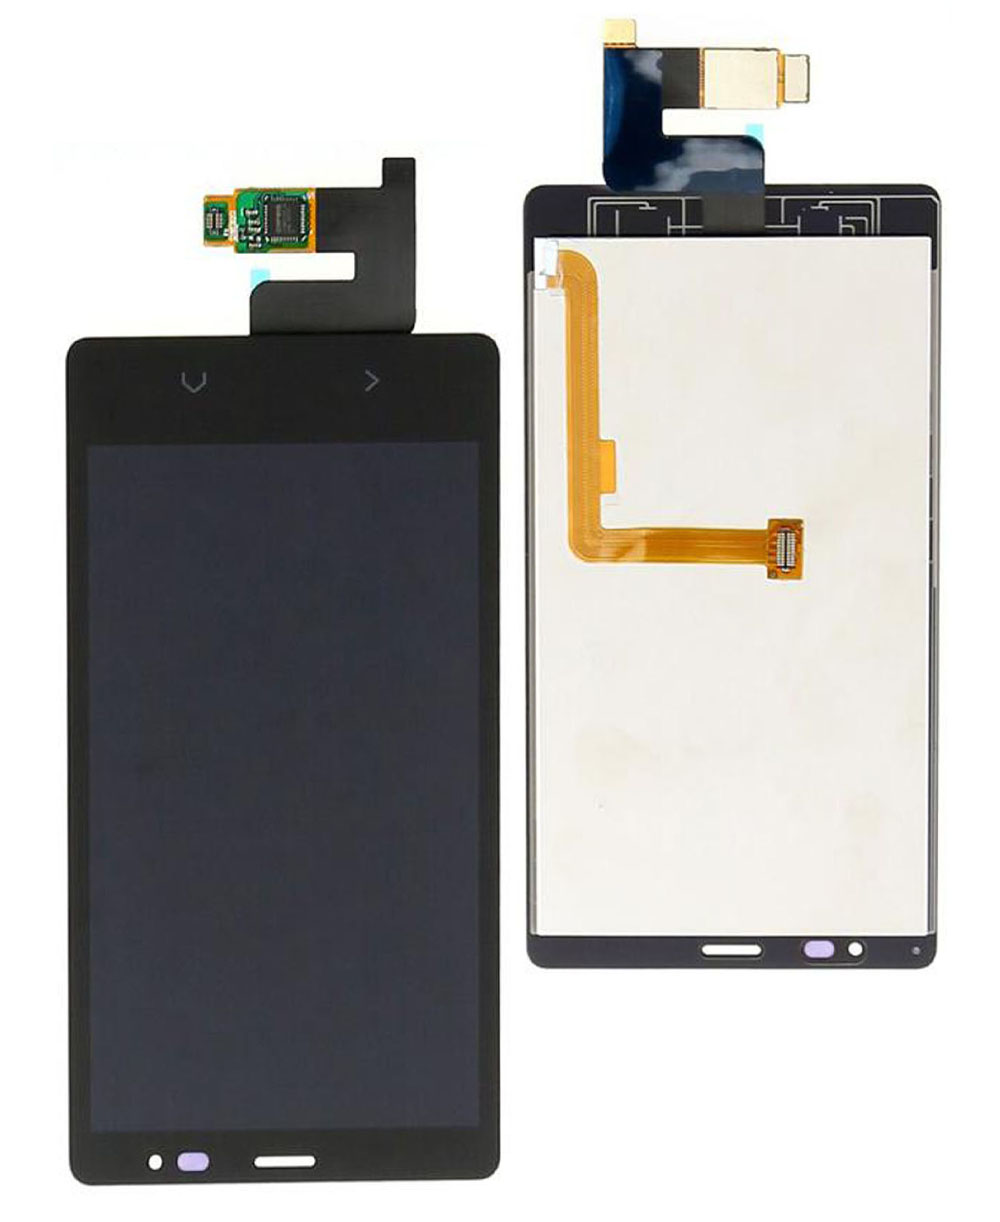 STARDE Replacement LCD For <font><b>Nokia</b></font> Lumia X2 RM-<font><b>1013</b></font> LCD Display Touch Screen Digitizer Assembly Frame 4.3